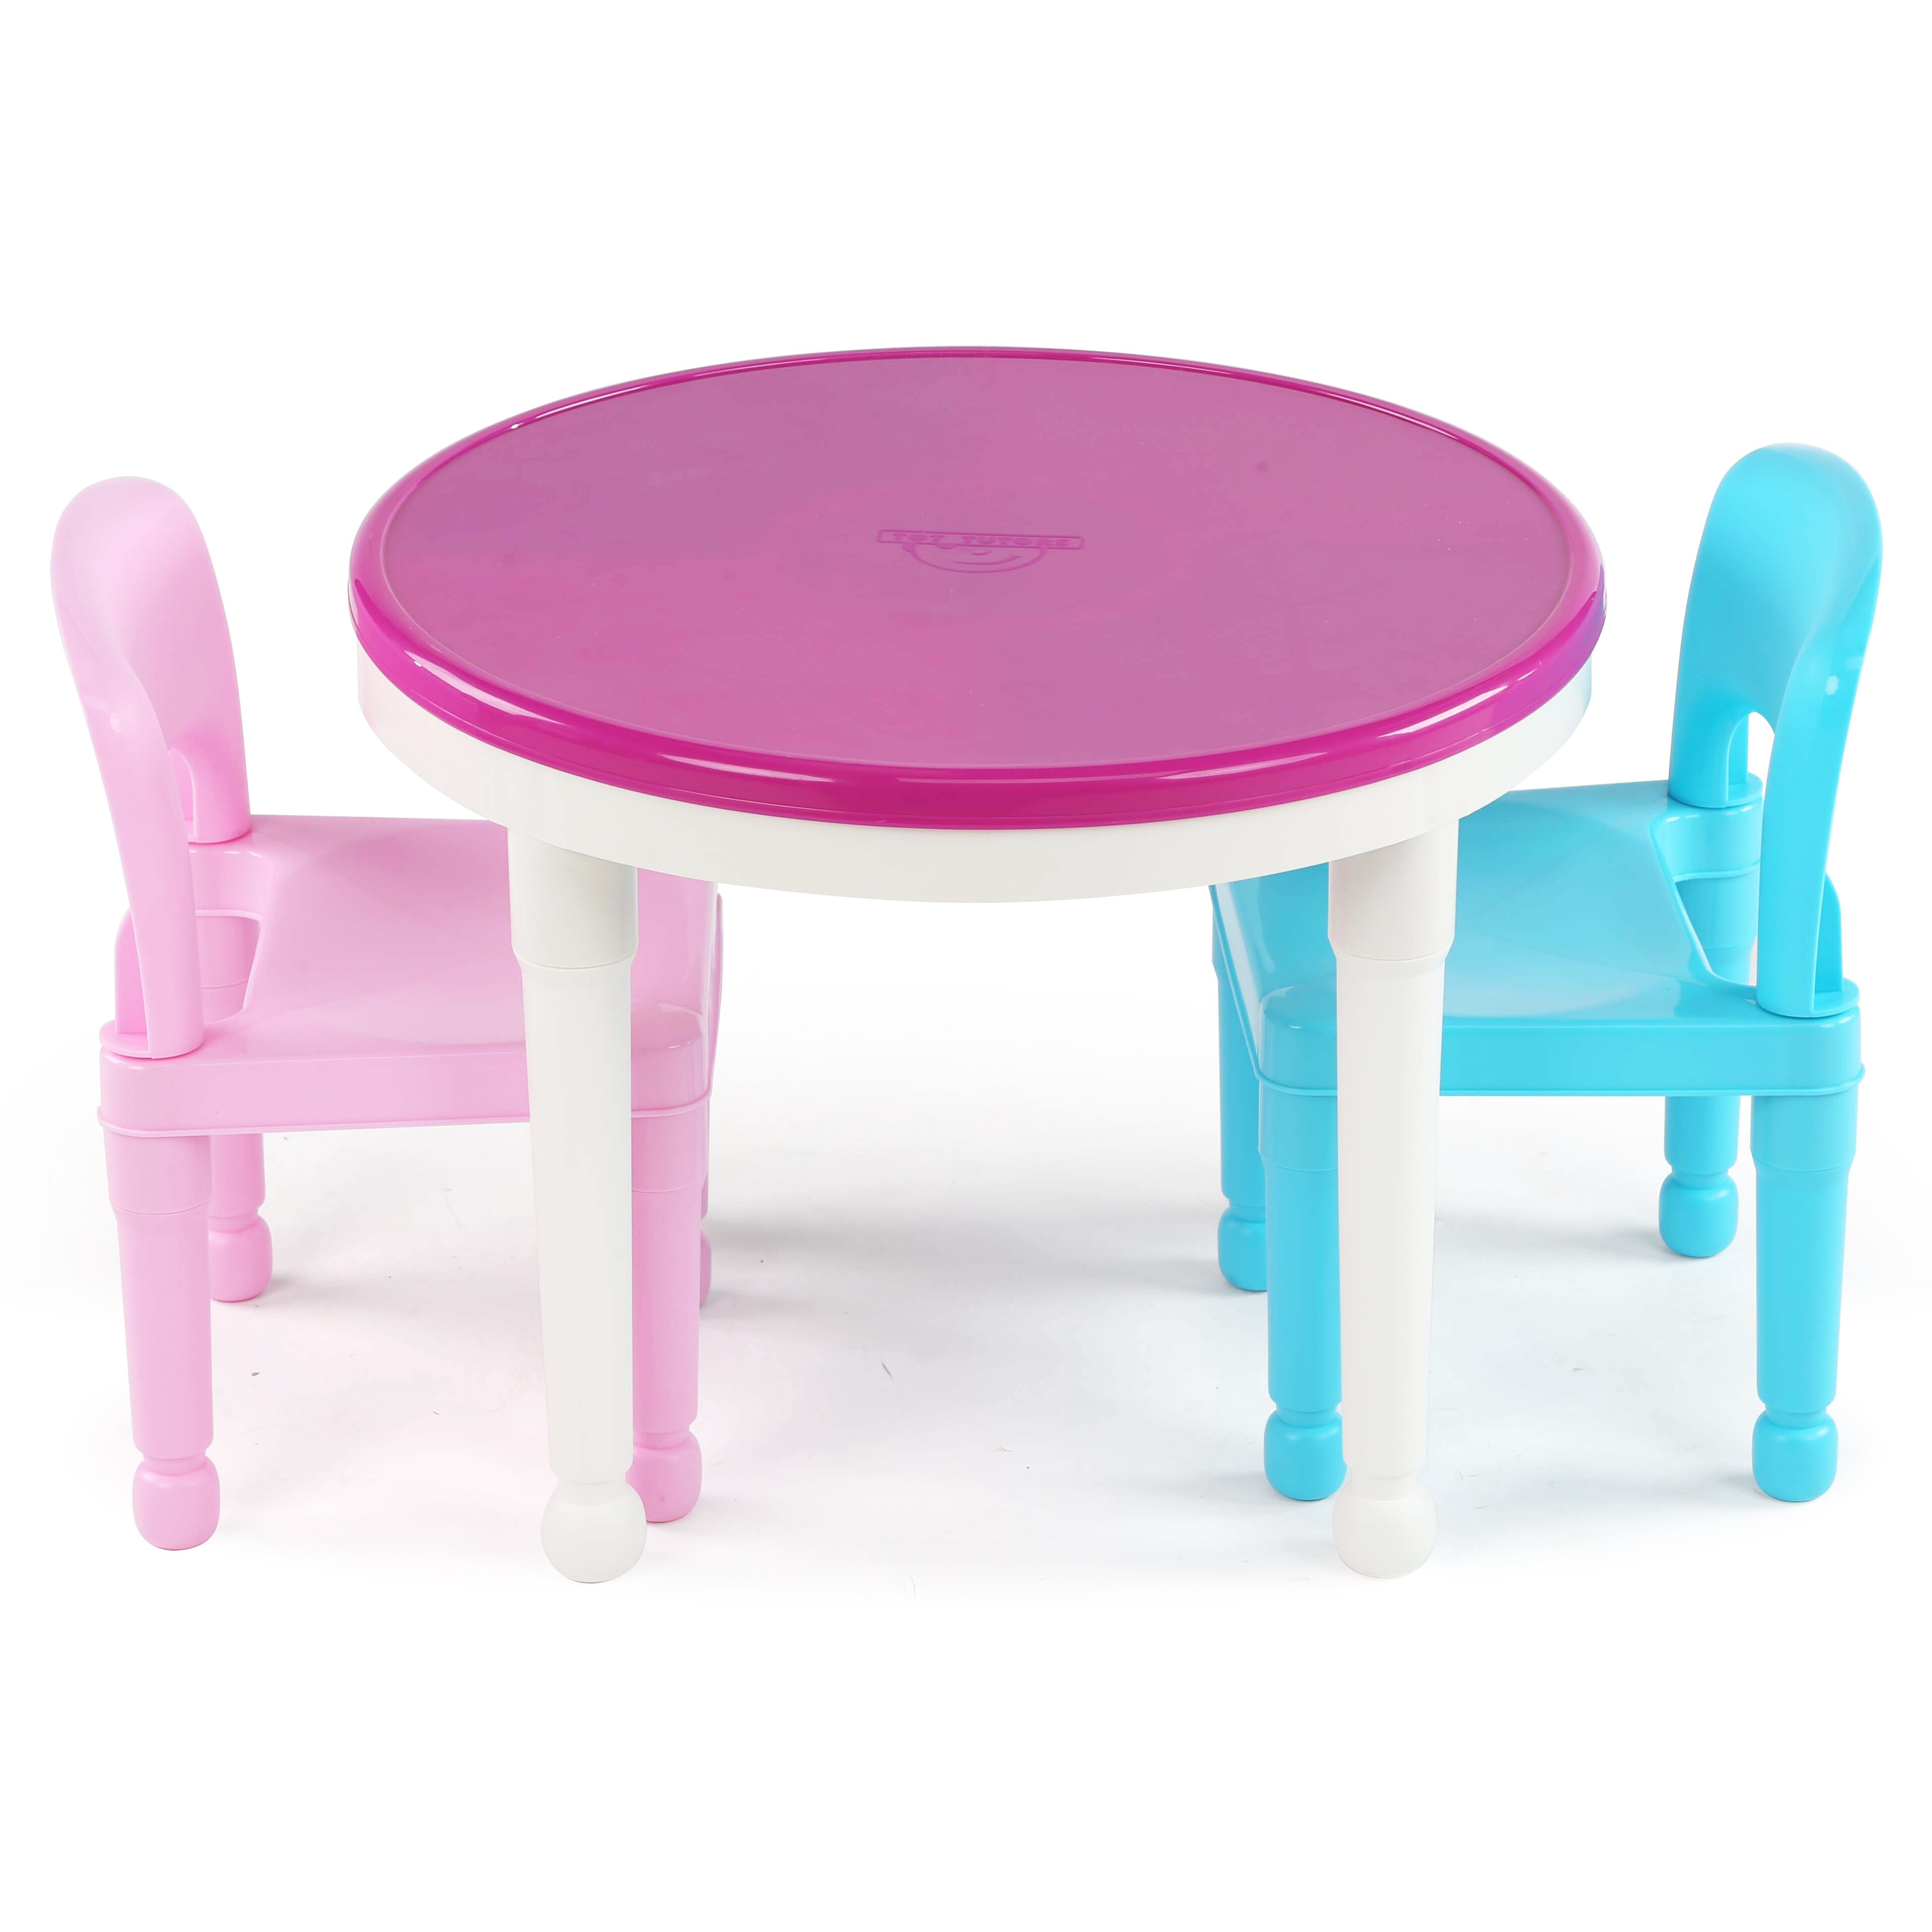 Plastic Table Chair Set Tot Tutors Kids 3 Piece Round Table And Chair Set Reviews Wayfair